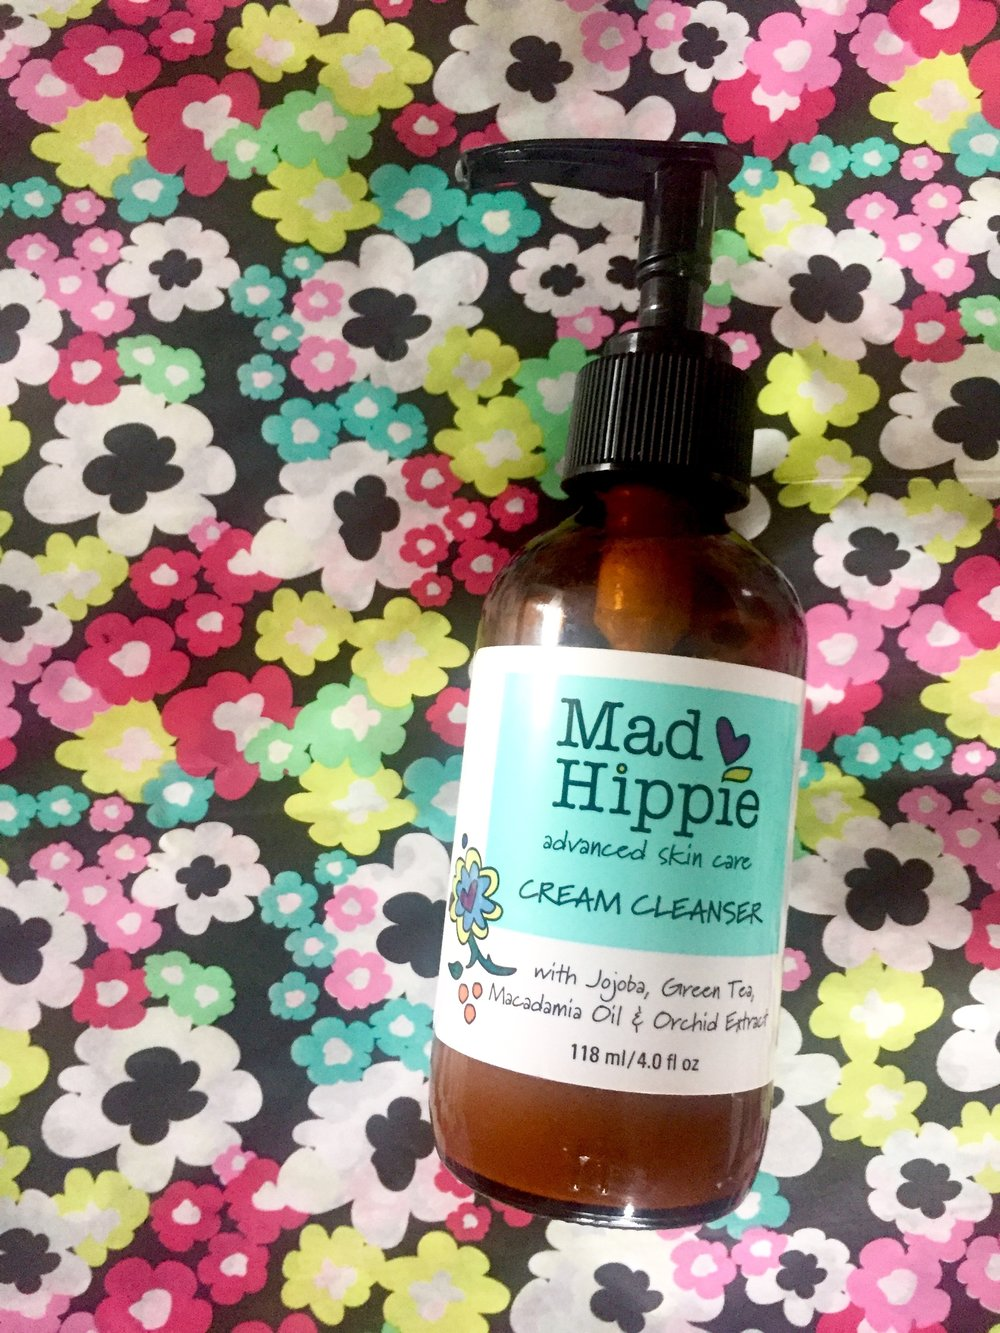 Mad Hippie Cream Cleanser is an all-natural cleanser that effectively removes makeup and other impurities, leaving the skin feeling soft and looking bright. After testing this product on my combination skin, I think it is best for those with normal, dry, or combination skin types.     Amazon, $12.78